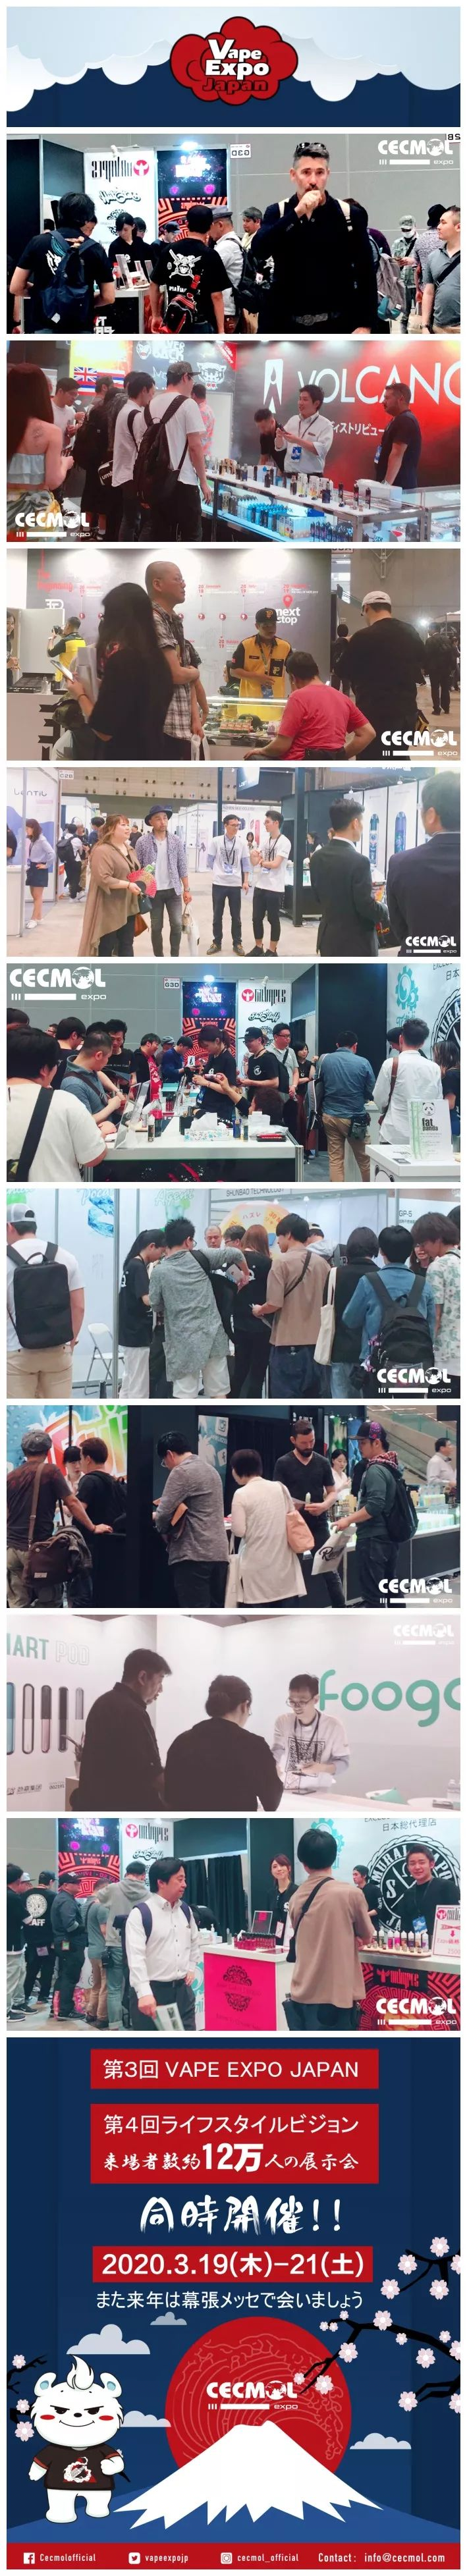 The 2nd Vape Expo Japan in 2019